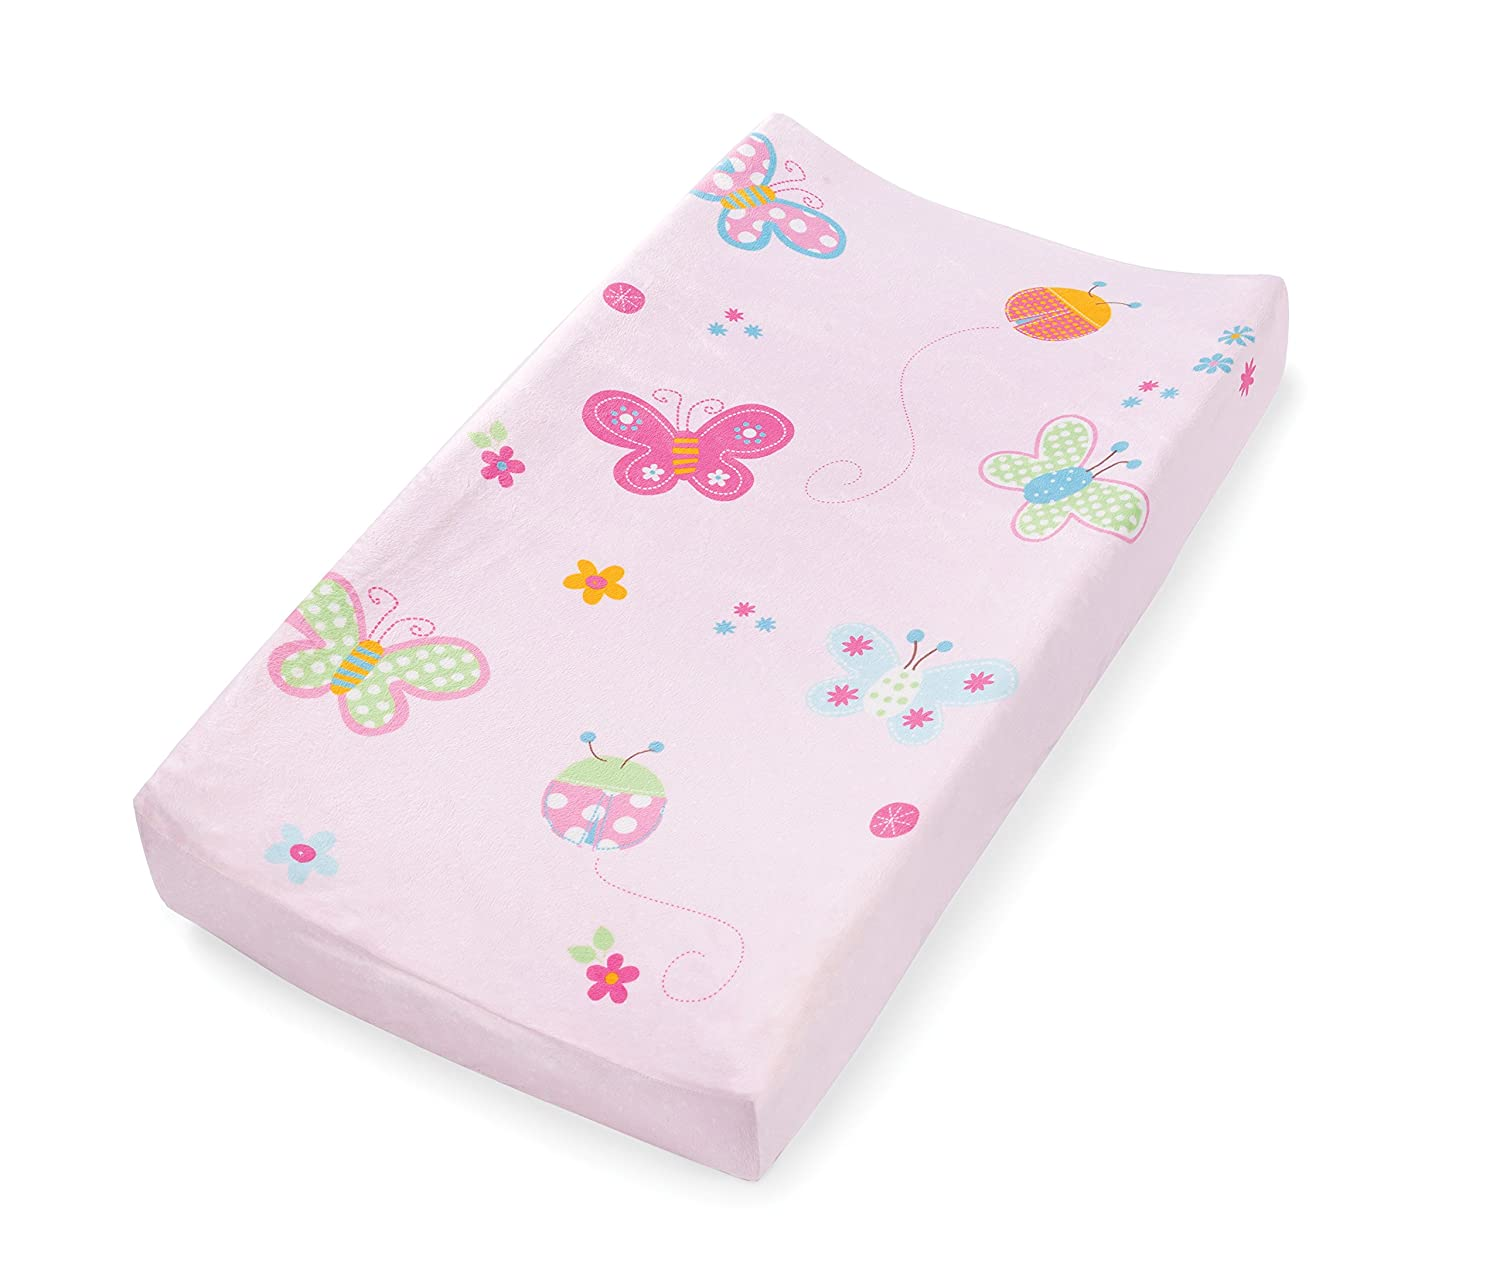 Summer Infant Character Change Pad Cover, Butterfly Ladybug 92480